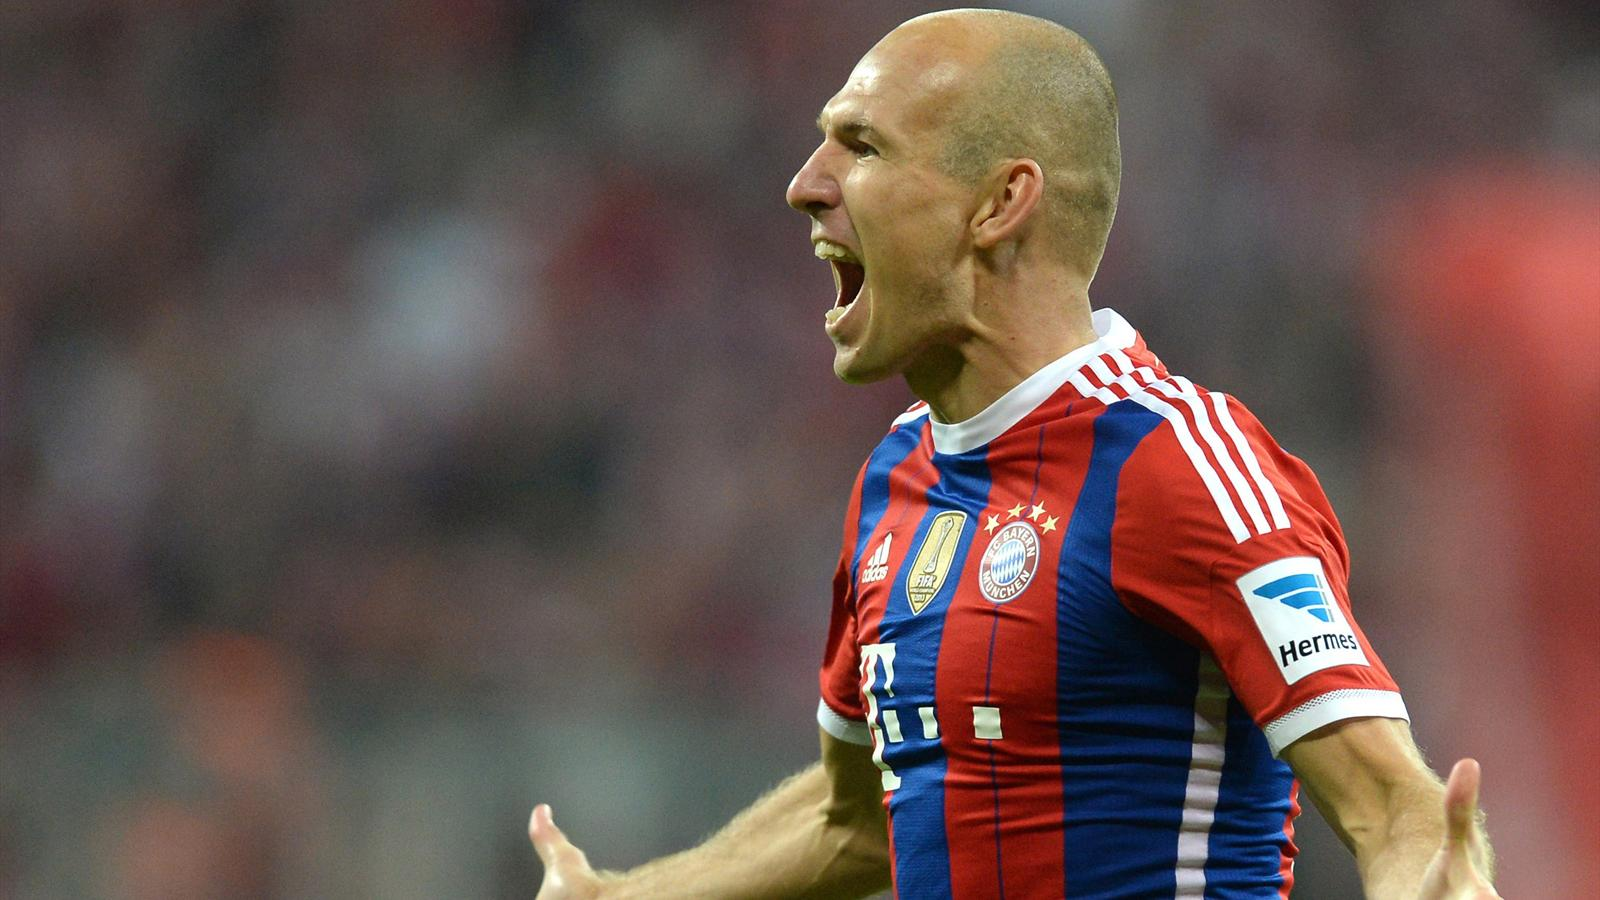 Arjen Robben wallpapers high quality